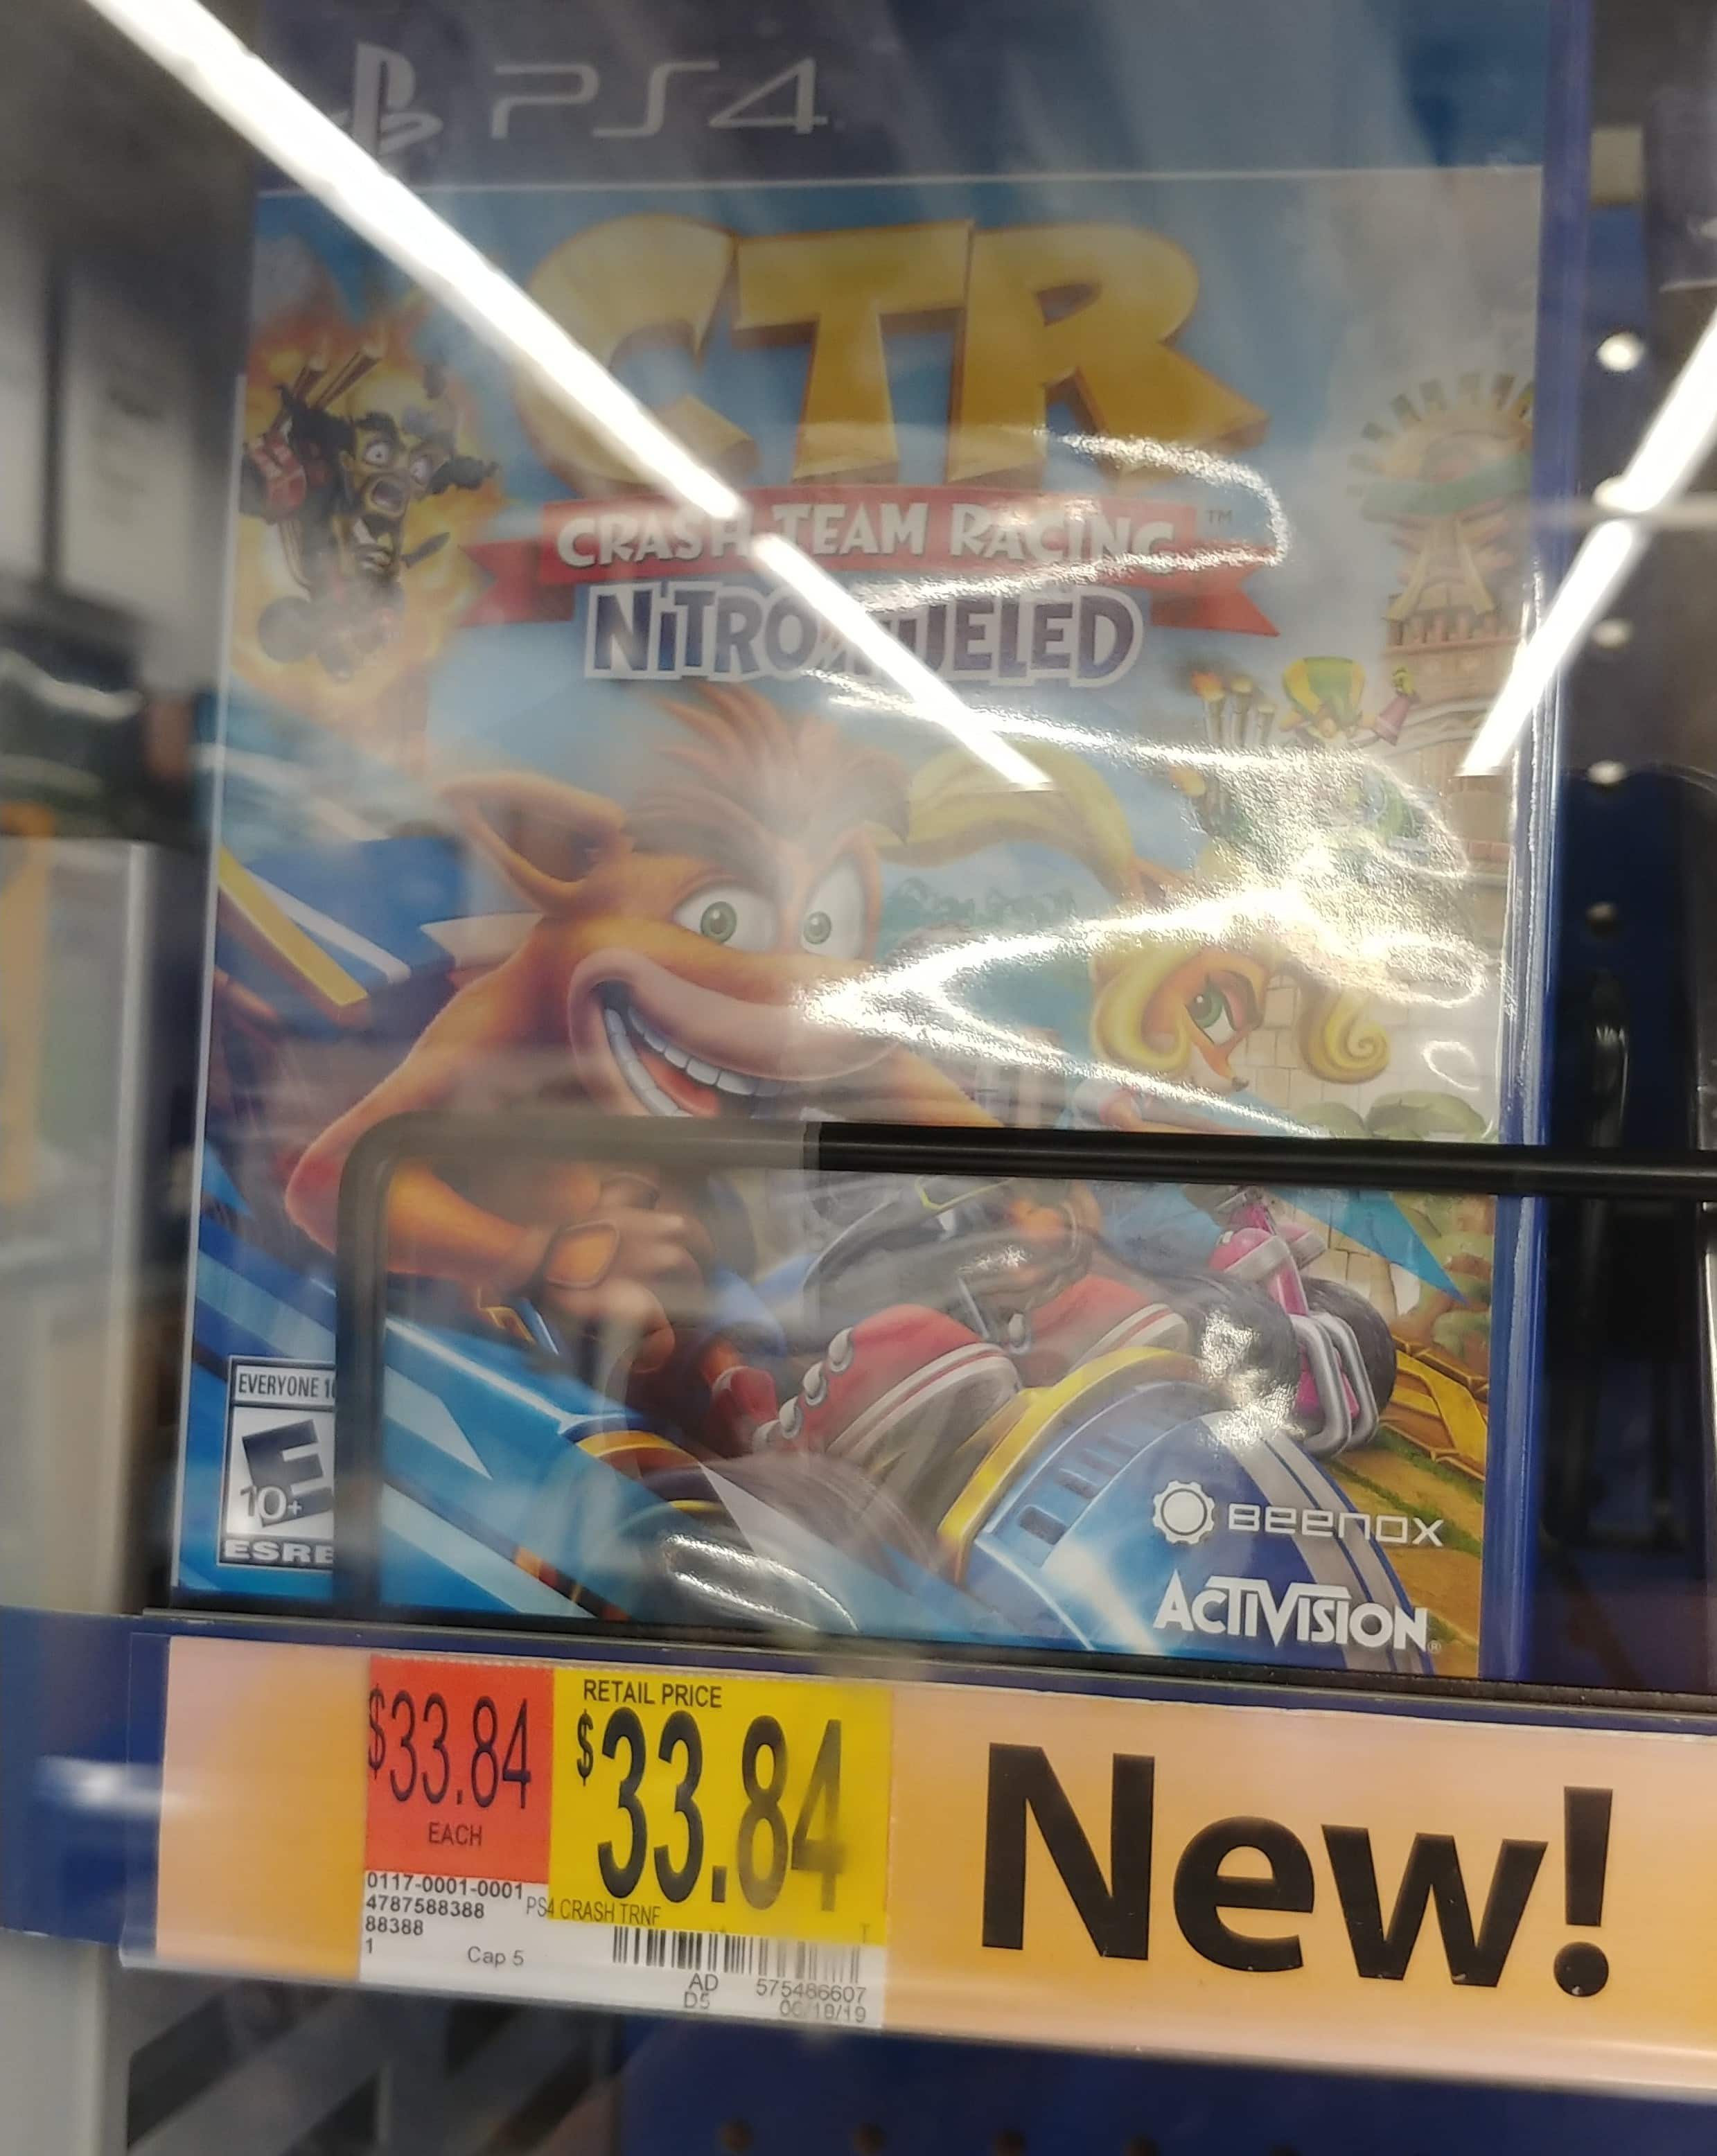 Crash Team Racing: Nitro Fueled (PS4, Xbox One, Switch) $33.84 @Walmart In-Store only